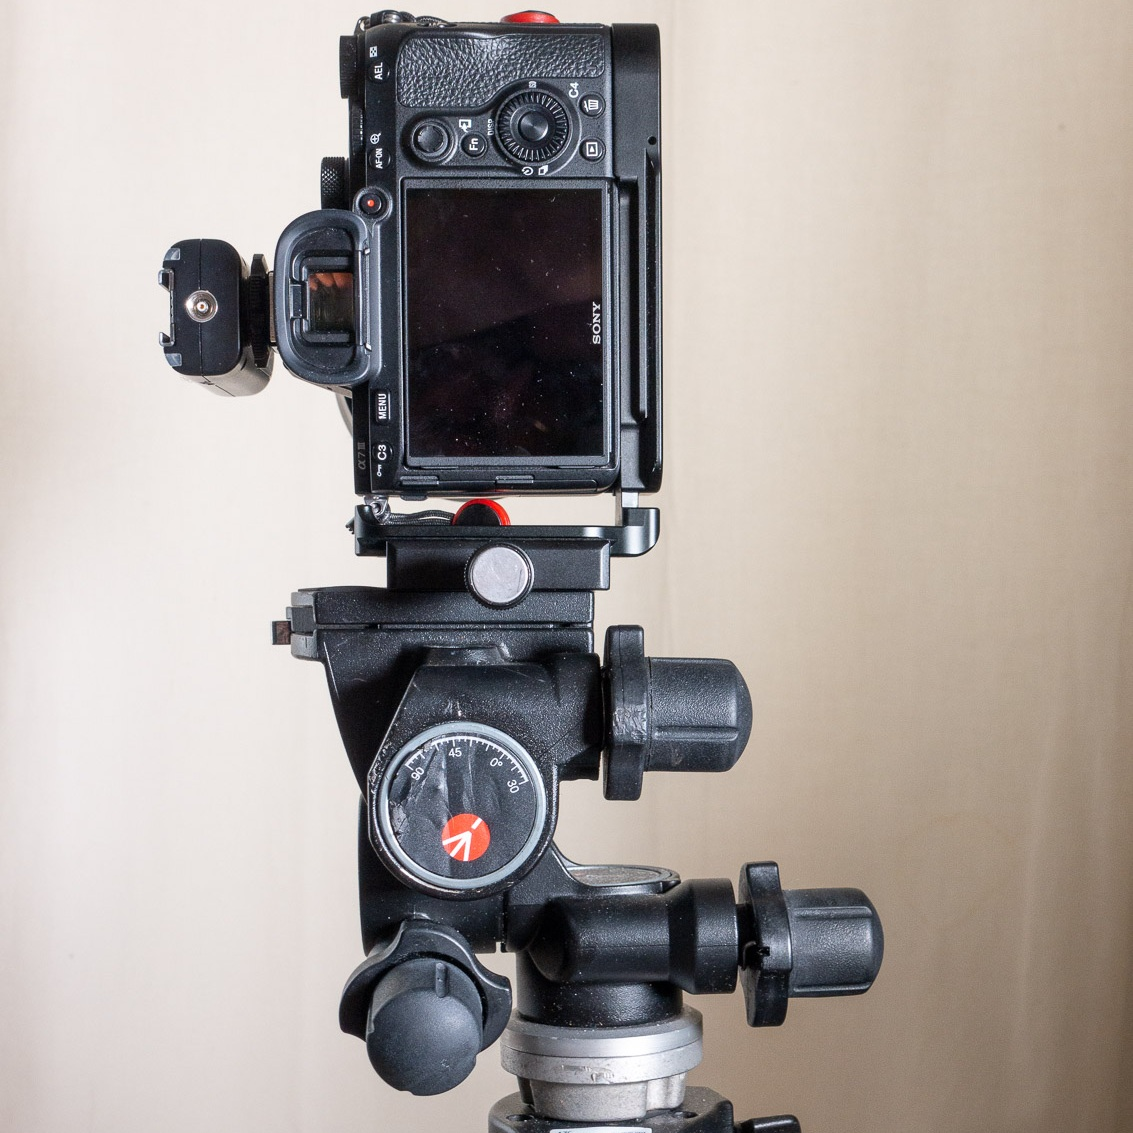 When using an L-Bracket, it's much easier to get a portrait orientation with the camera and tripod head centered on the tripod.